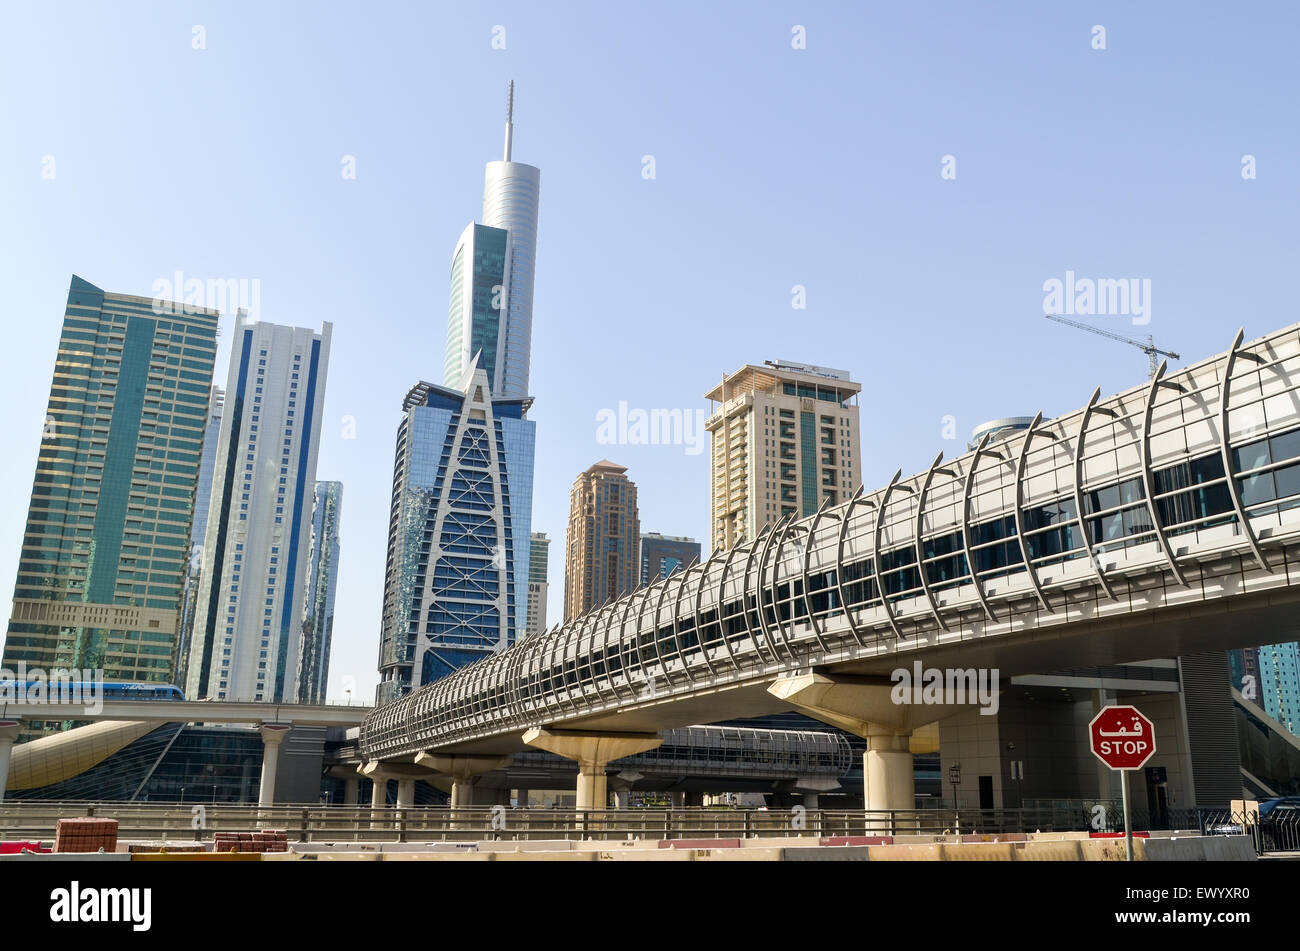 STOP sign, Jumeirah Lake Towers, near Dubai Marina, UAE, and bridge over the highway to the metro station - Stock Image